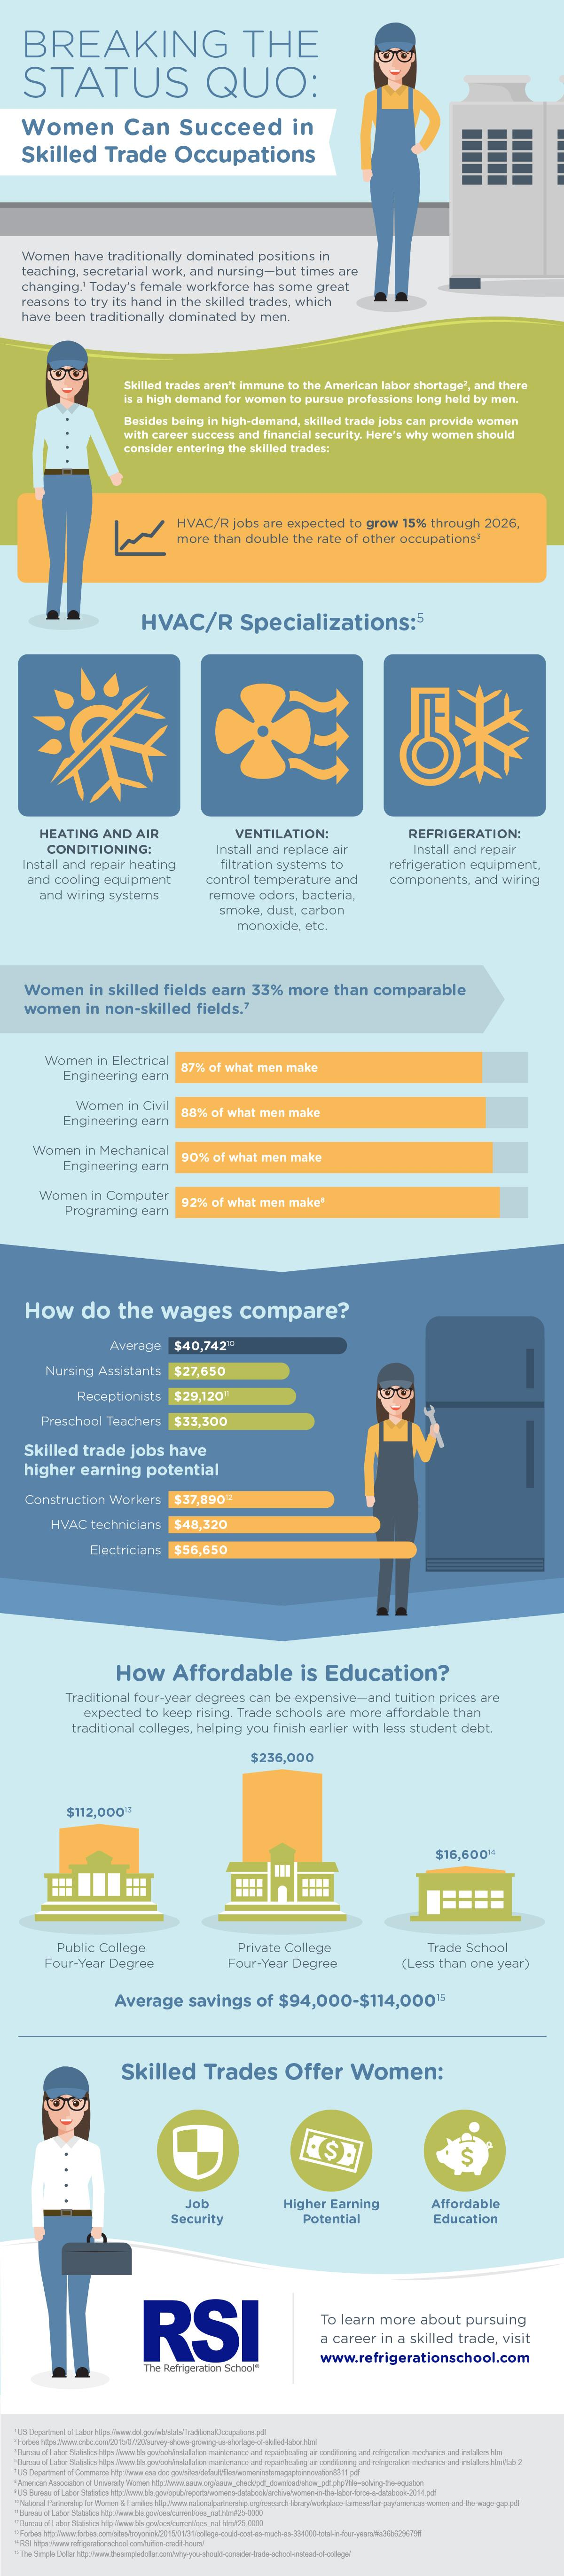 infographic by the refrigeration school inc. about career opportunities for women in hvac/r and construction